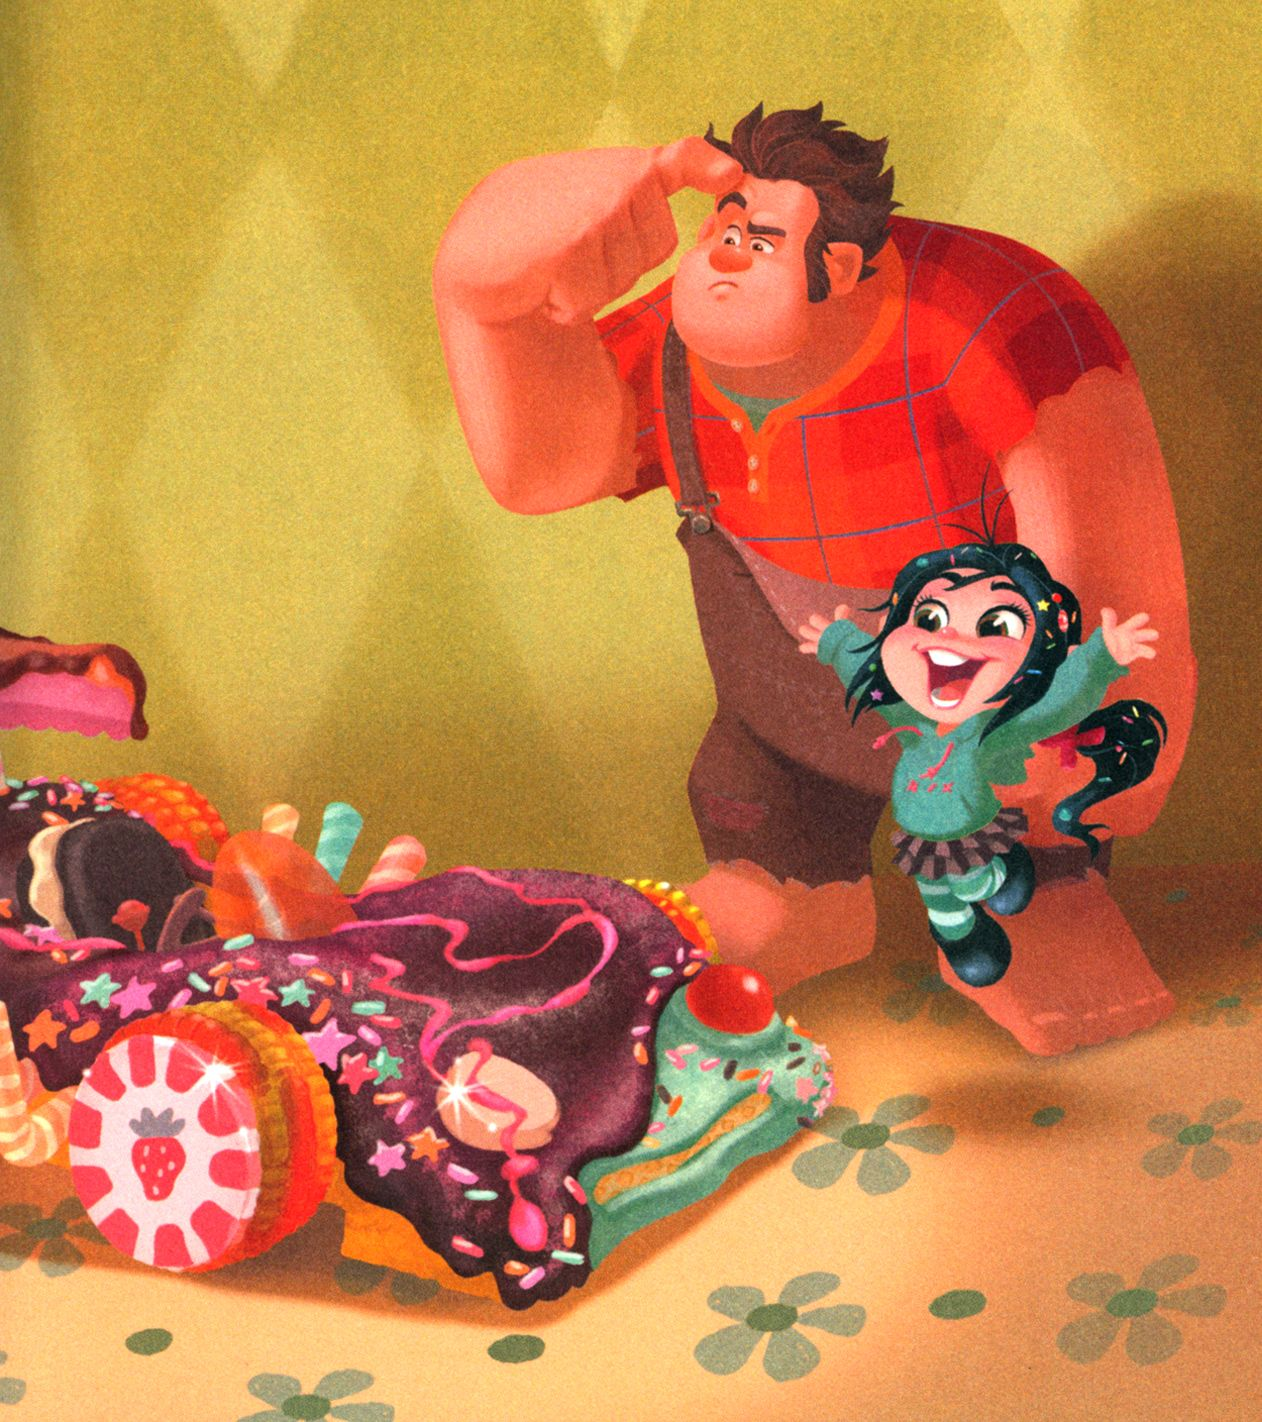 Wreck It Ralph - Concept and Tie-in Art  This movie was adorable!